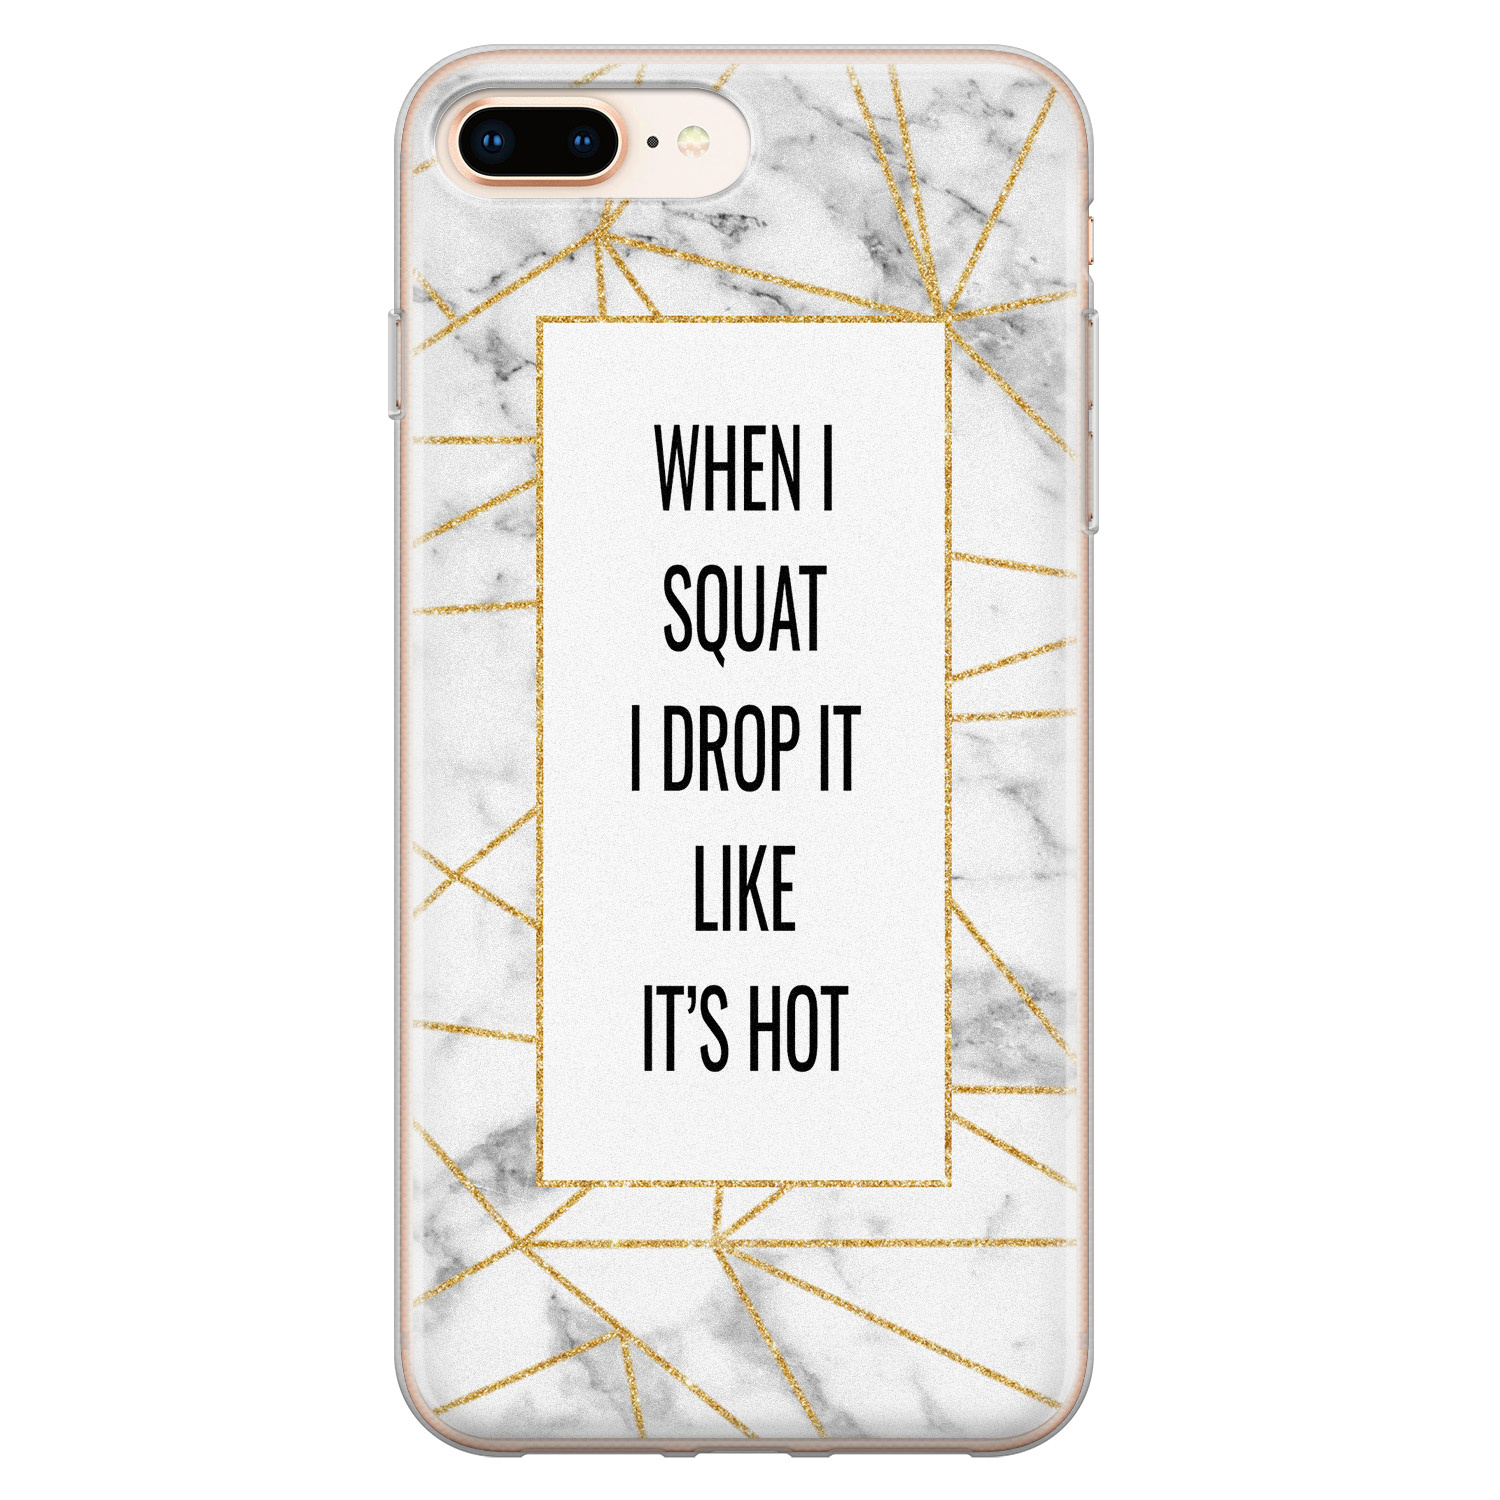 iPhone 8 Plus/7 Plus siliconen hoesje - Dropping squats